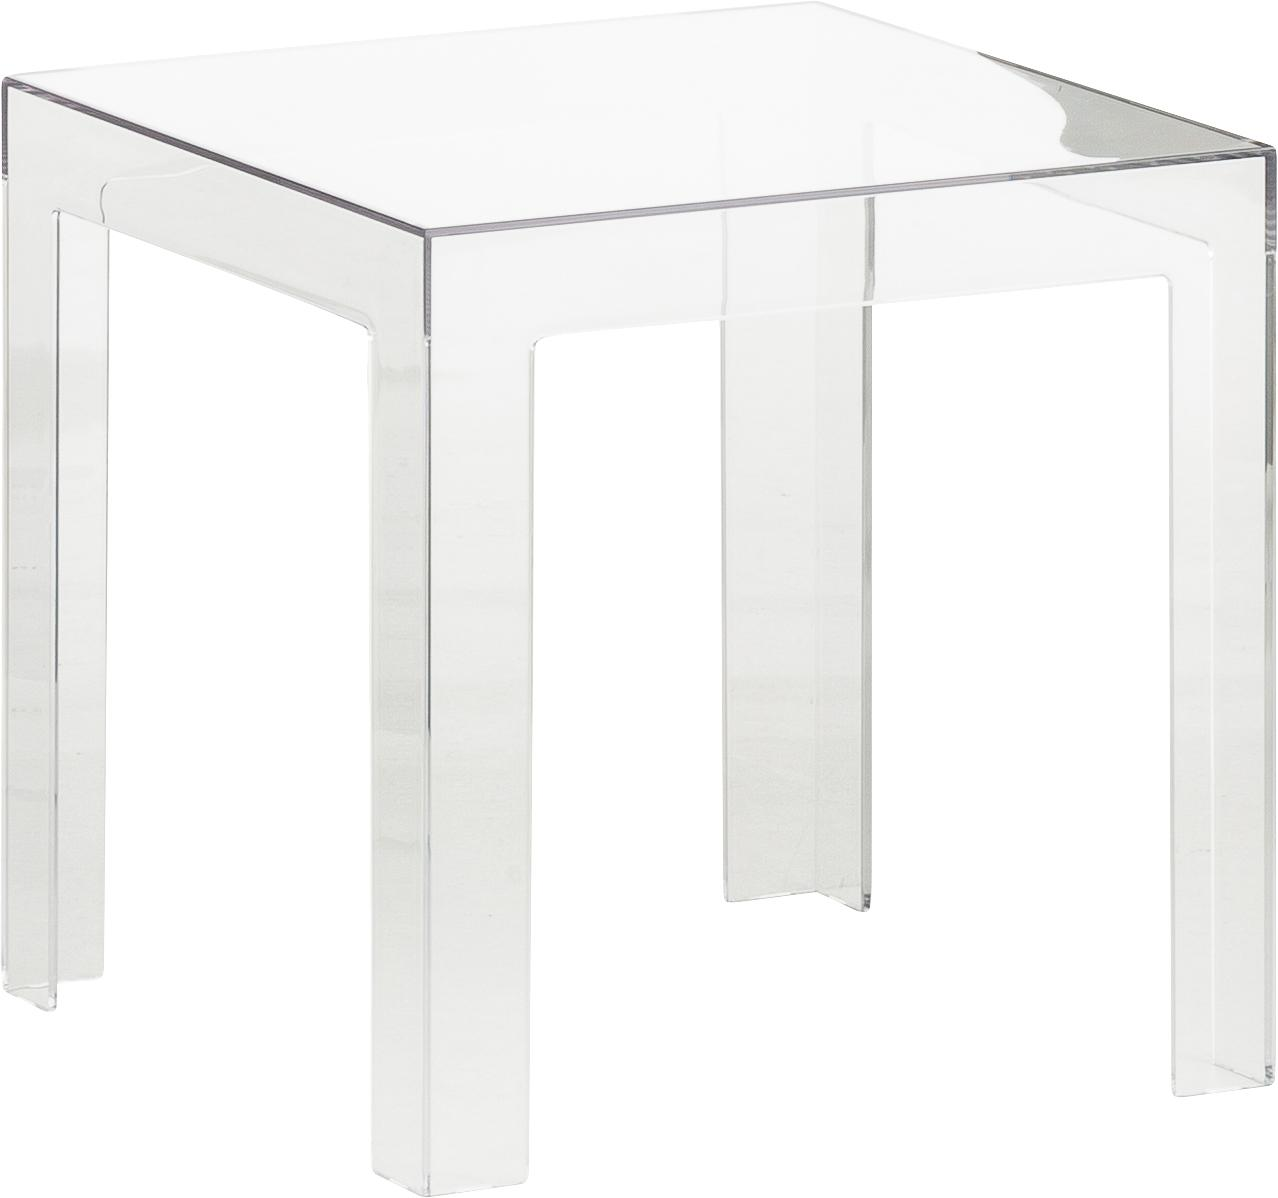 table d appoint transparentejolly